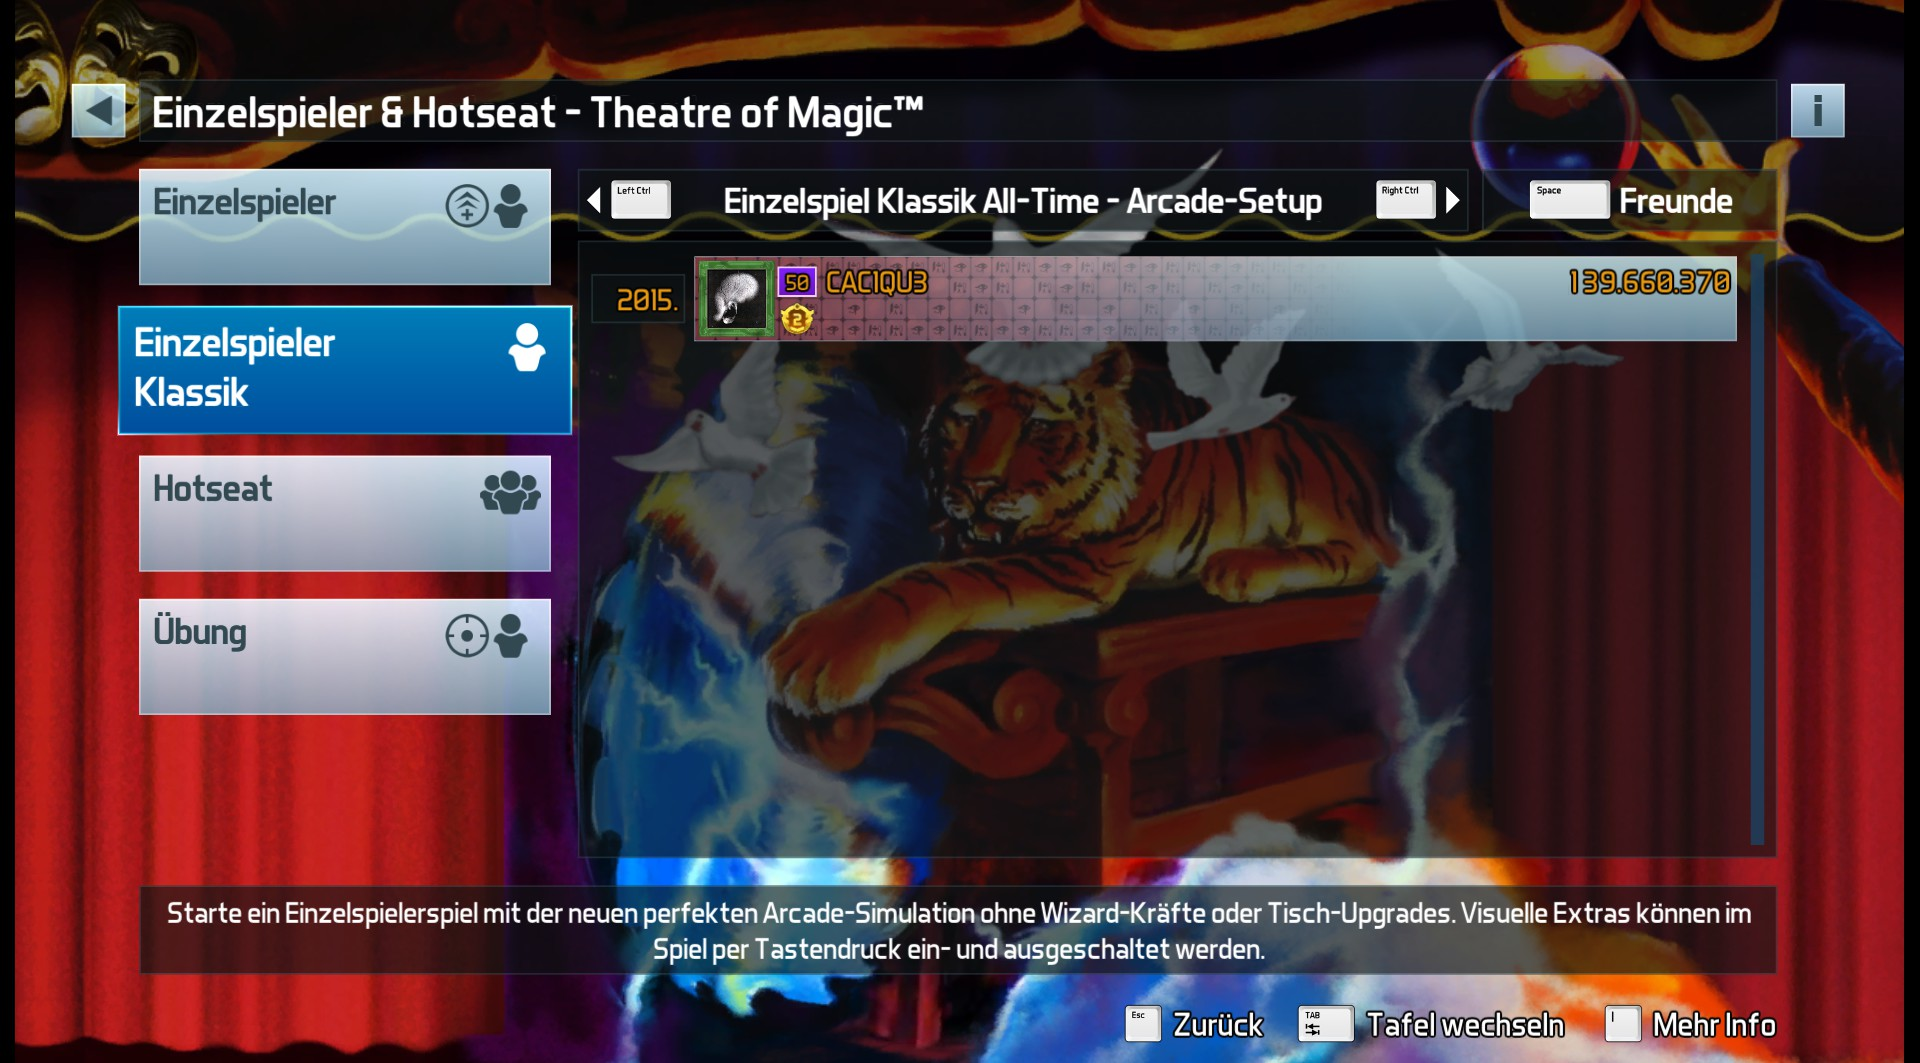 CAC1QU3: Pinball FX3: Theatre Of Magic [Arcade] (PC) 139,660,370 points on 2019-05-17 23:32:24